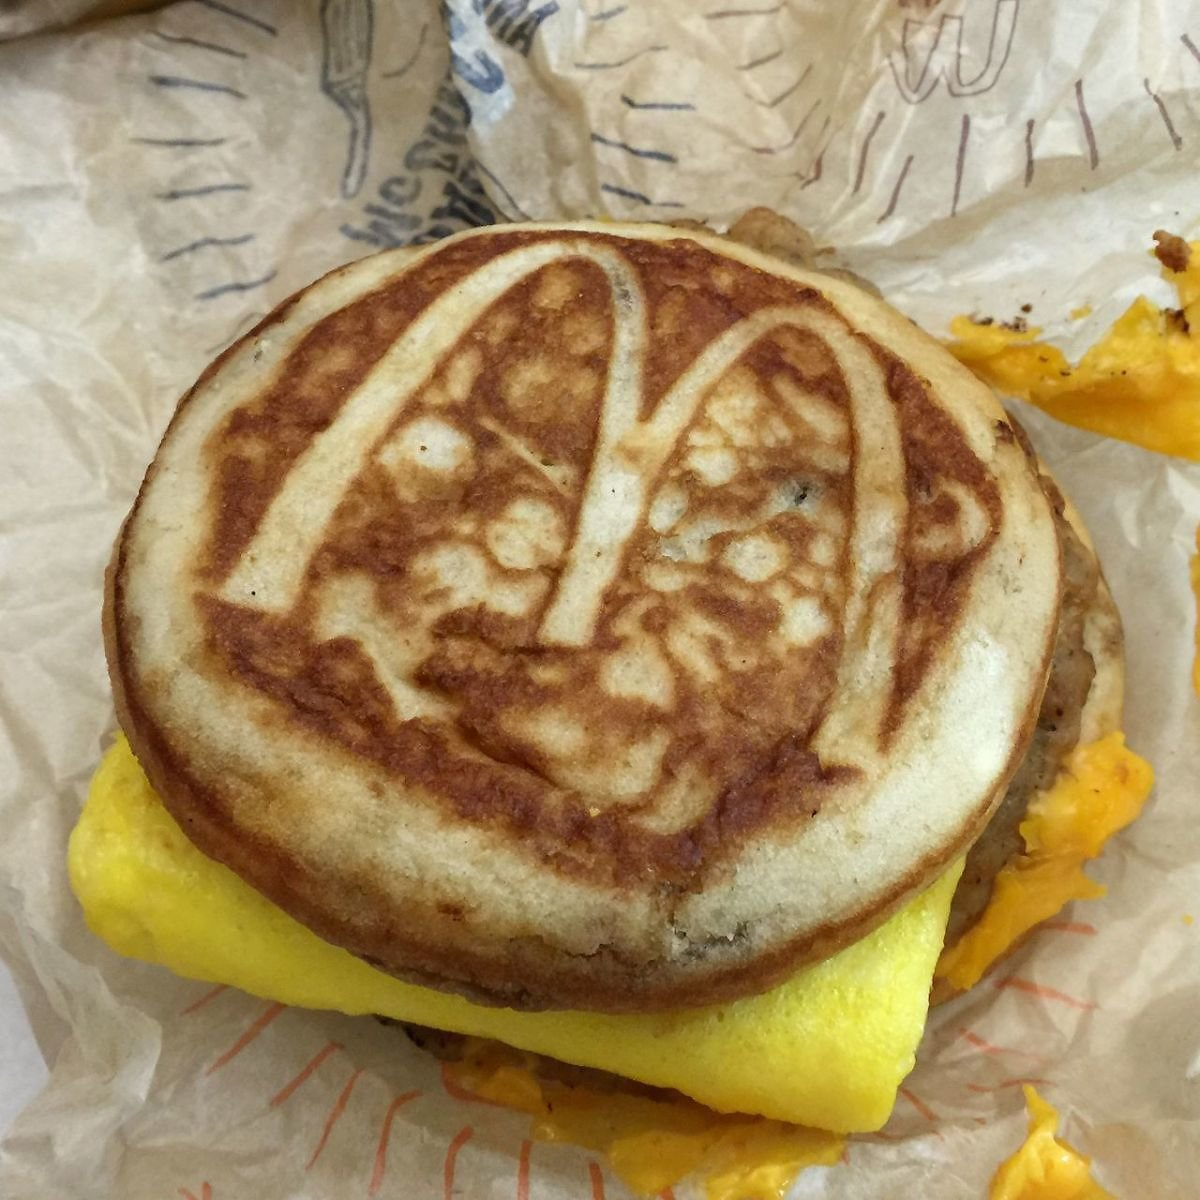 McDonald's Explains Why They No Longer Serve All Day Breakfast